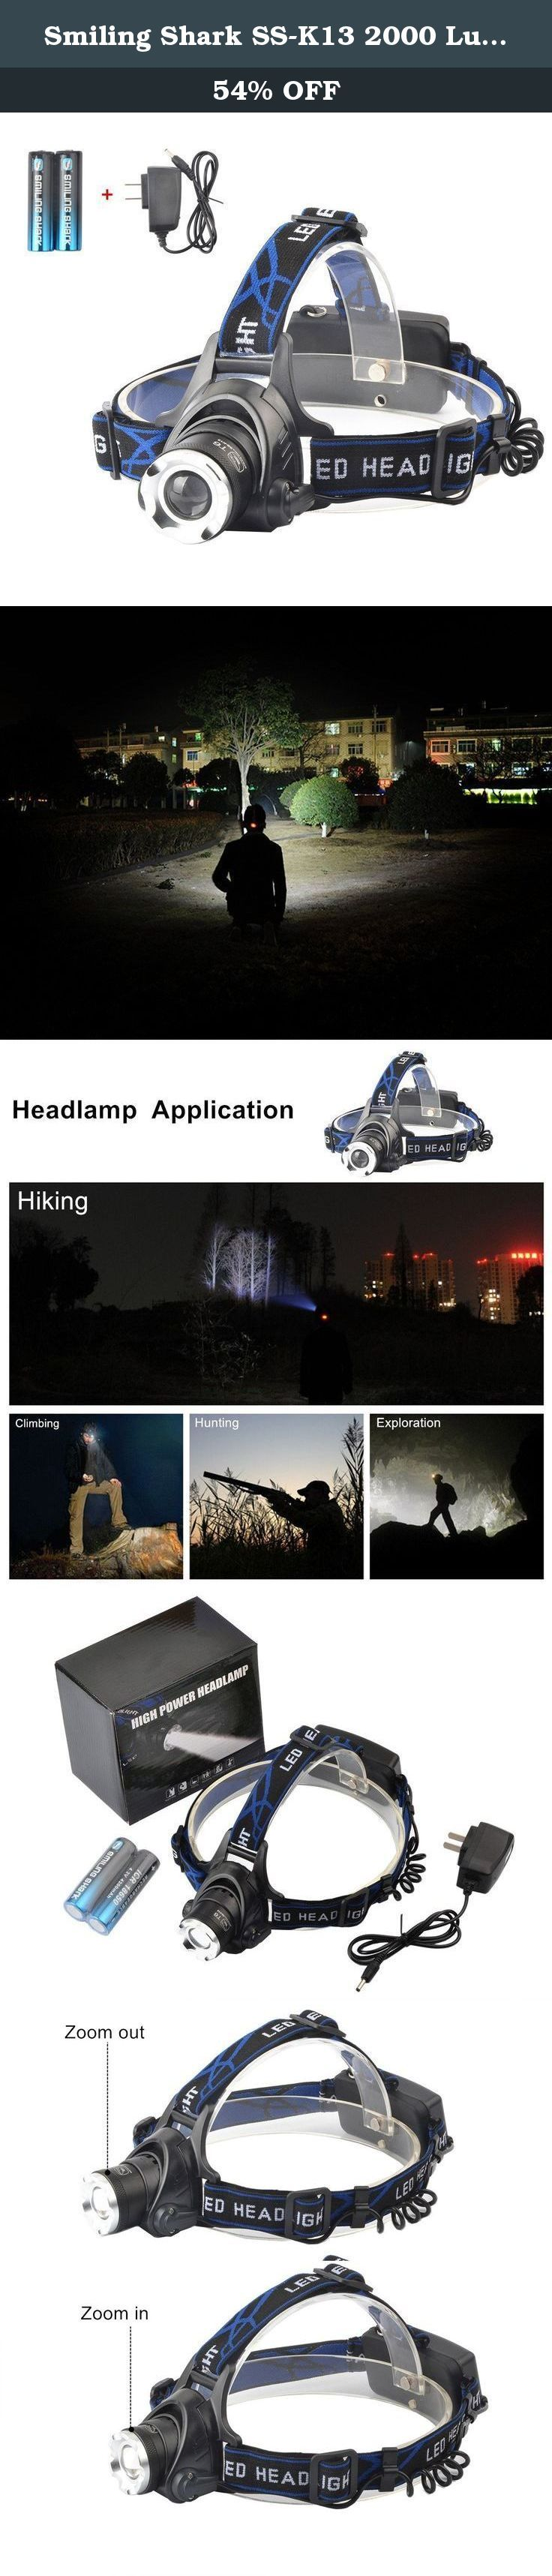 Smiling Shark SS-K13 2000 Lumens CREE XML T6 LED Headlamp, 3 Modes Adjustable Focus Zoomable Headlight Waterproof for Outdoor+2 X 18650 Rechargeable Batteries+Charger. Smiling Shark SS-K13 LED Headlamp: -100% Brand New CREE XML-T6 LED adjustable focus headlamp. -Lamp base: CREE, high power LED. With a lifespan of up to 100,000 hours or more, no need to consider replacing the cap for the whole life. -Waterproof switch and charge design.(Waterproof for rainy day not for in water,thanks for...